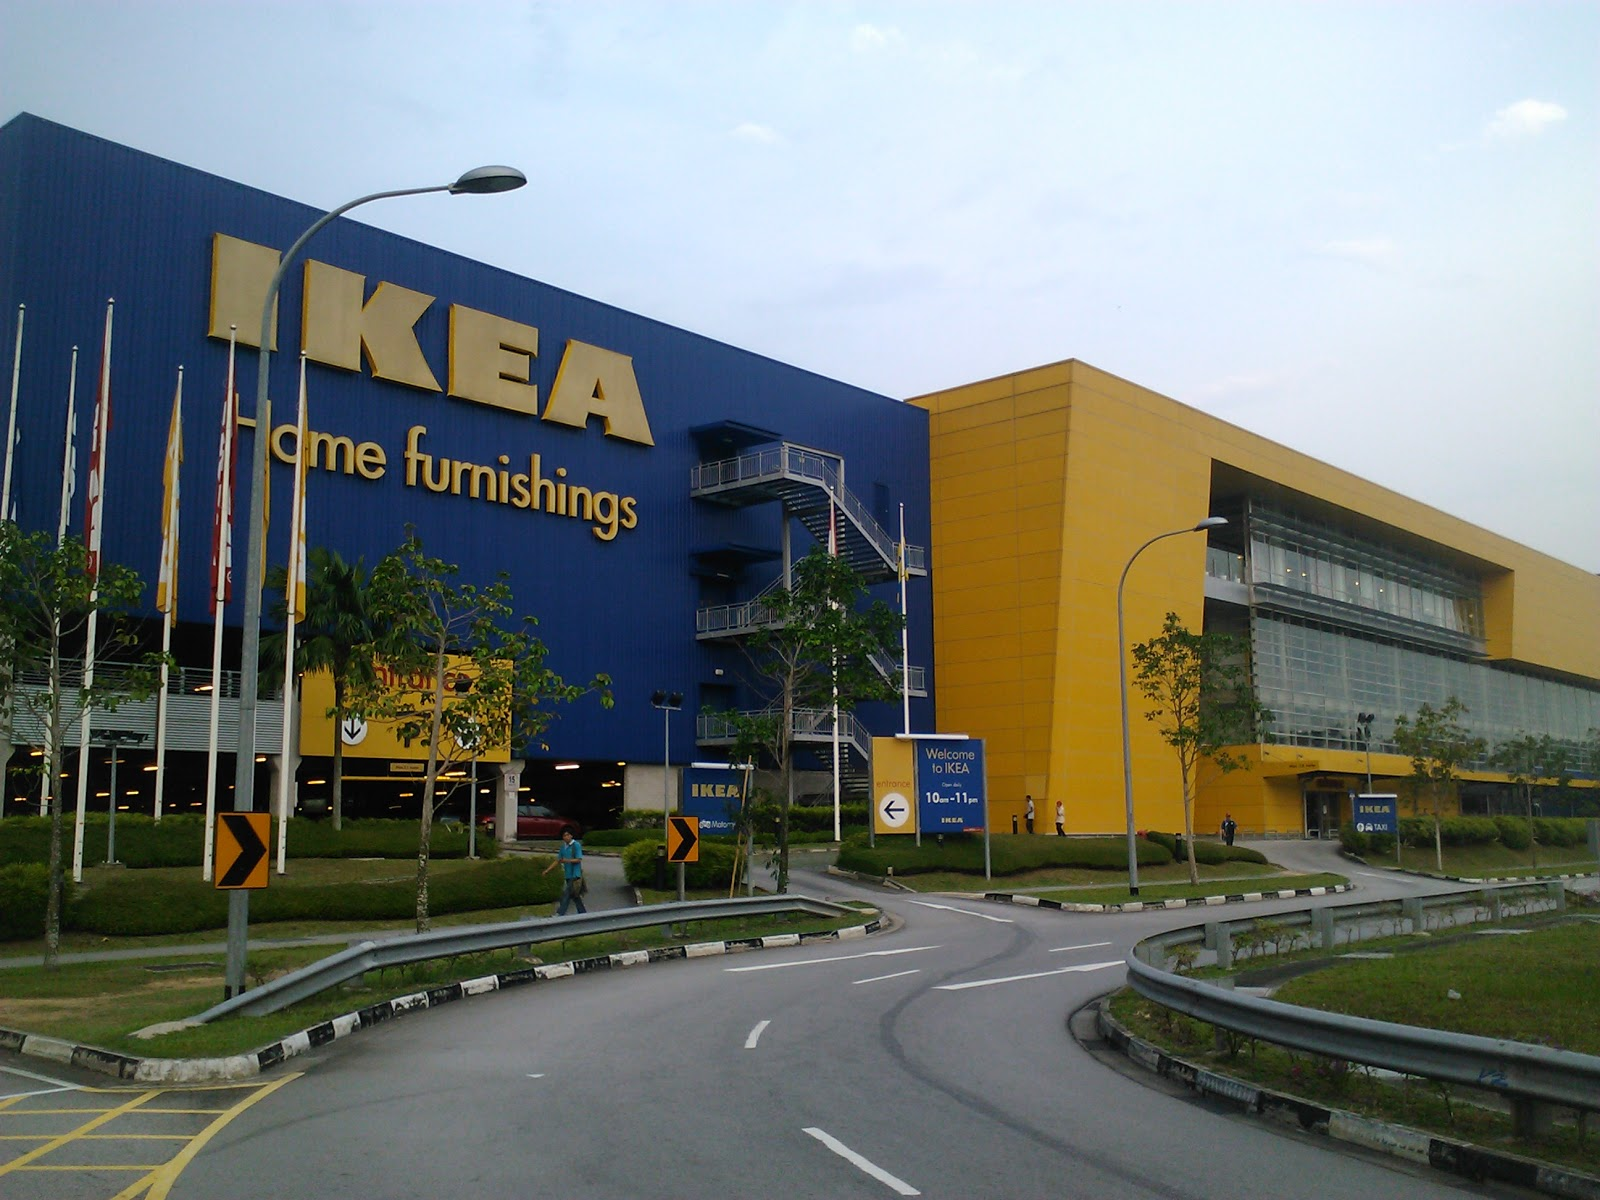 The Next Part Of Tampines Retail Park Is Ikea A Por Swedish Furniture Retailer And Unlike Conventional Retailers Has This